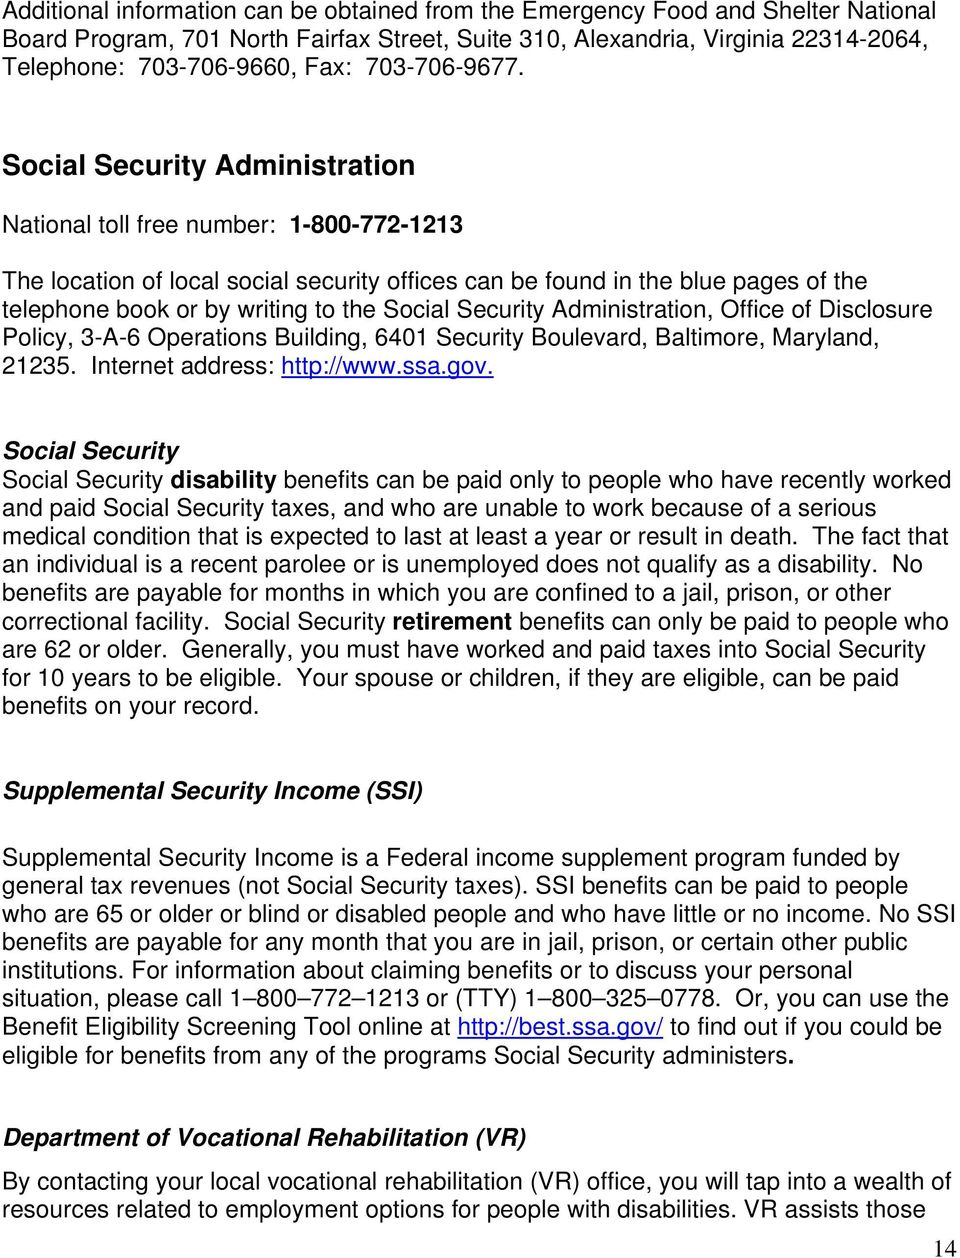 Social Security Administration National toll free number: 1-800-772-1213 The location of local social security offices can be found in the blue pages of the telephone book or by writing to the Social